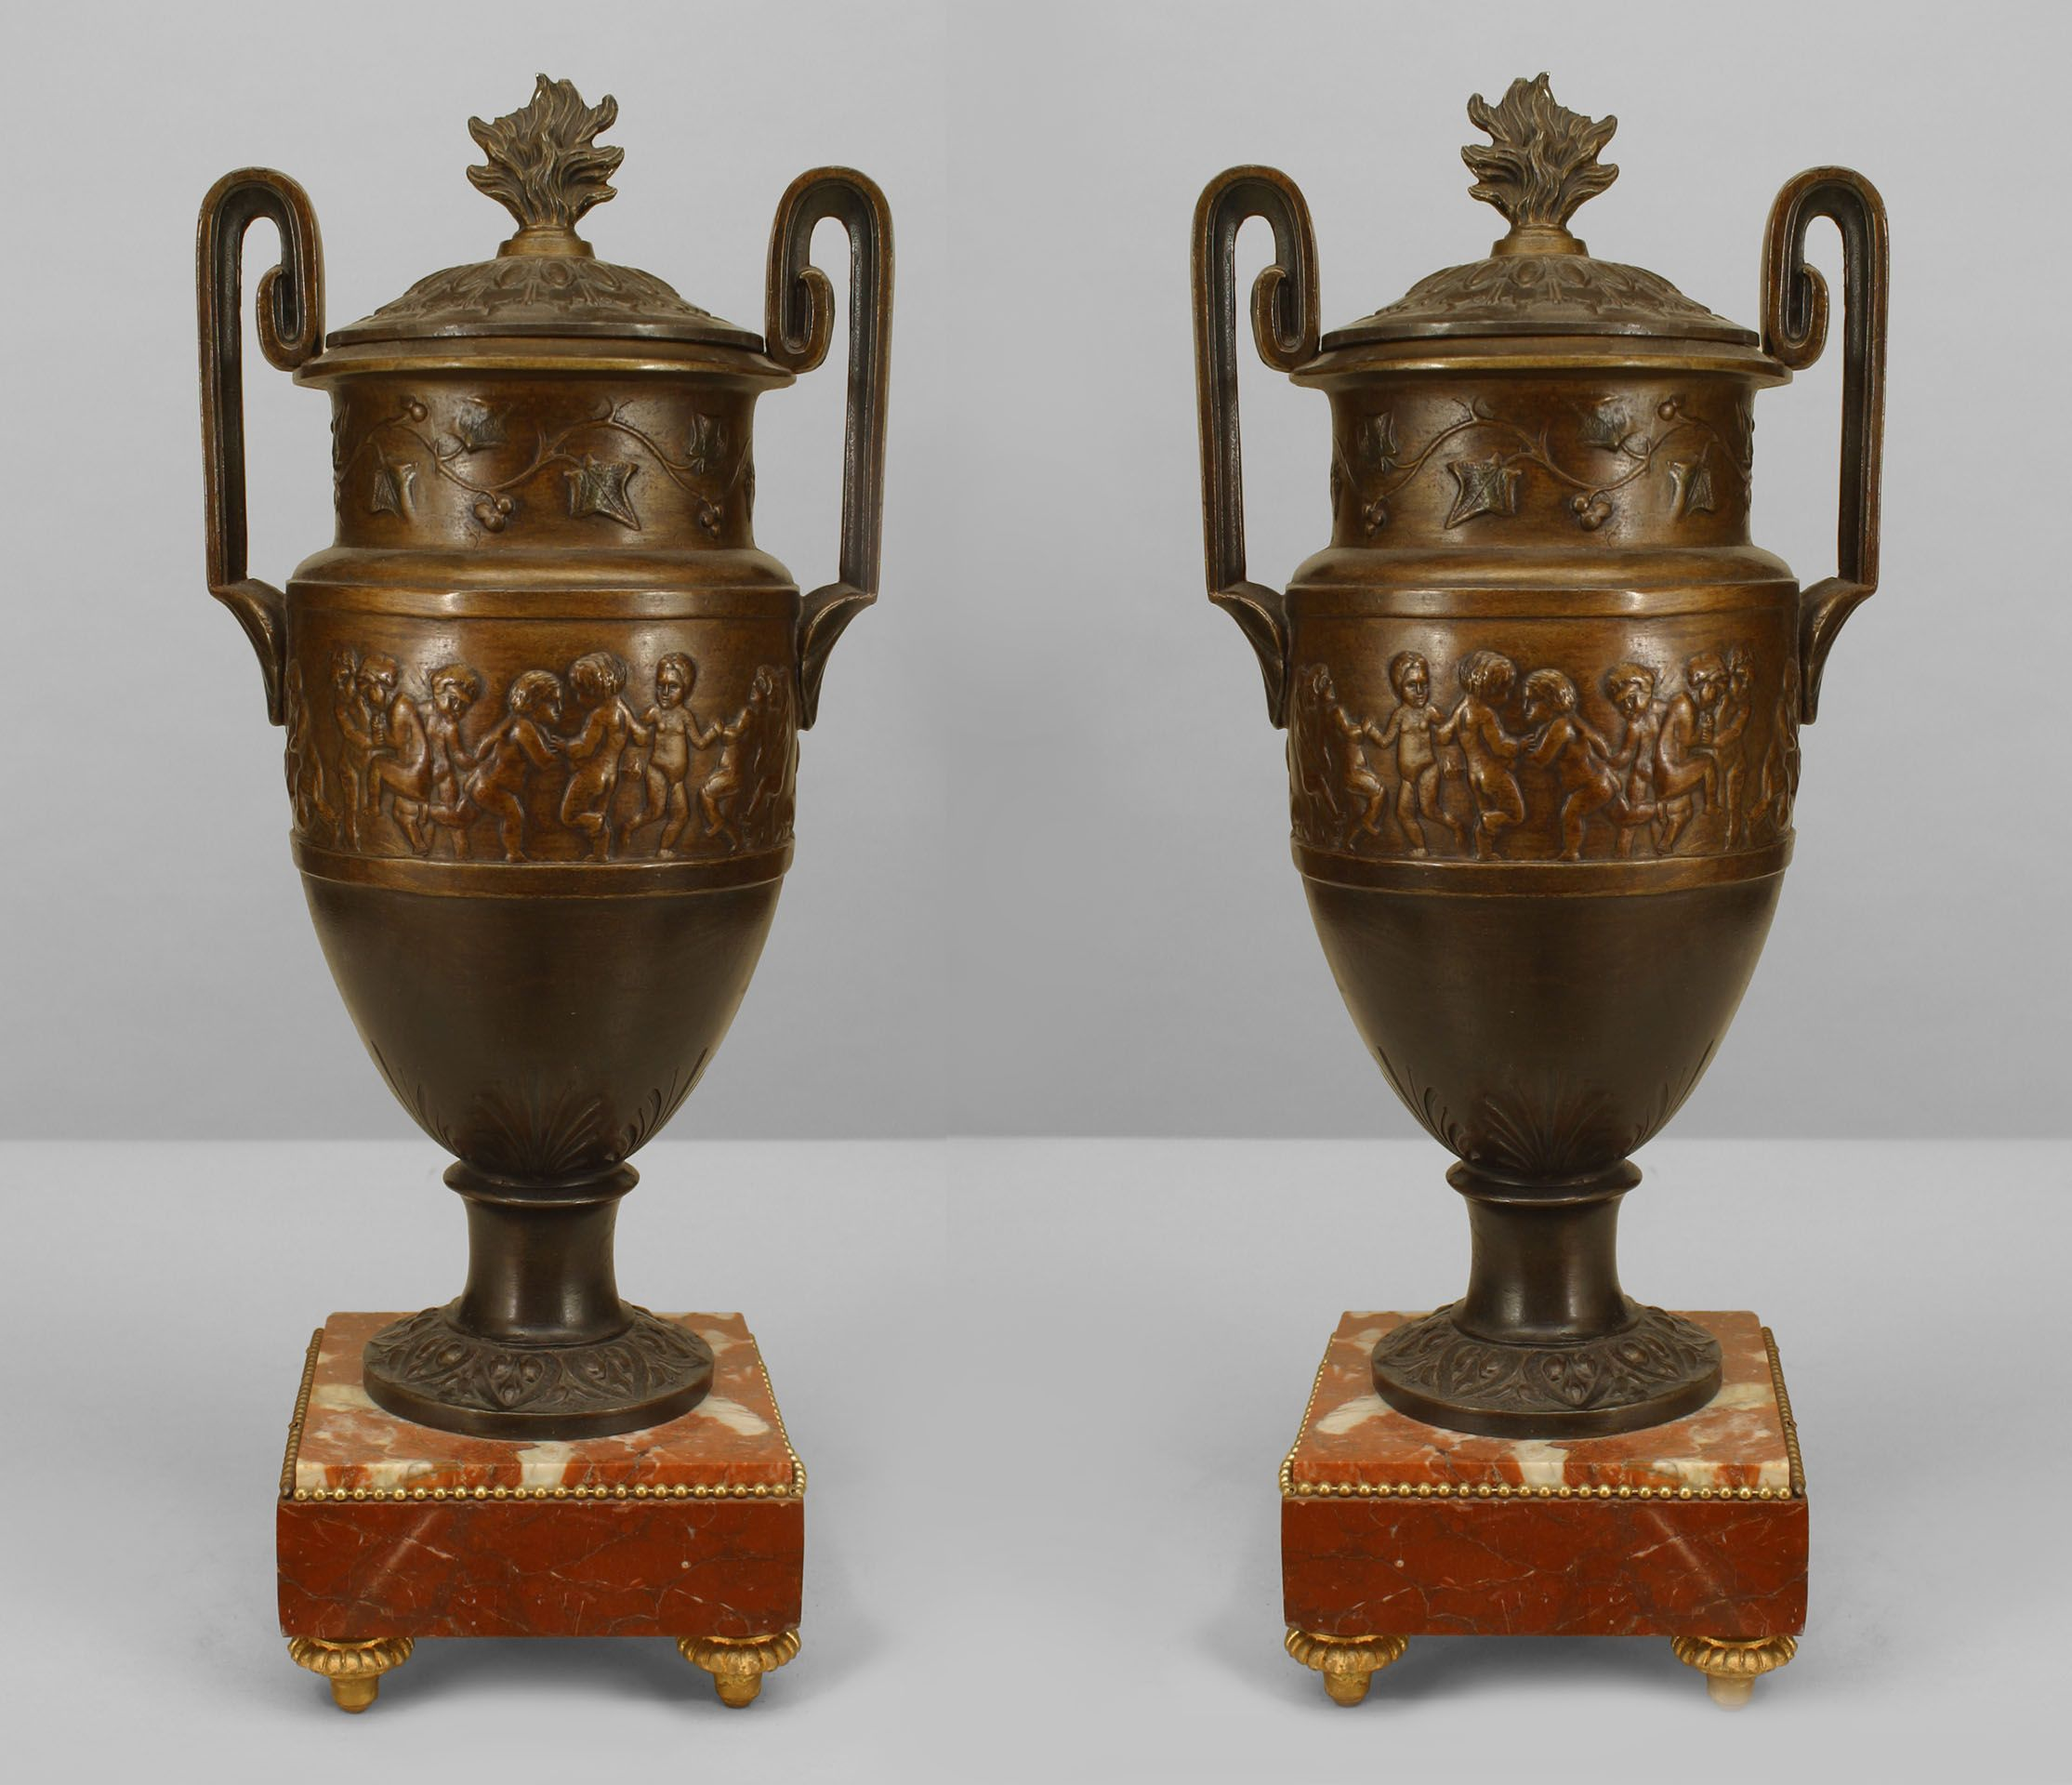 French victorian accessories urnvase bronze urns pinterest pair of french victorian style bronze patinaed metal urns with handles and neo classical figures in relief with a cover having a flame finial all on a rouge reviewsmspy